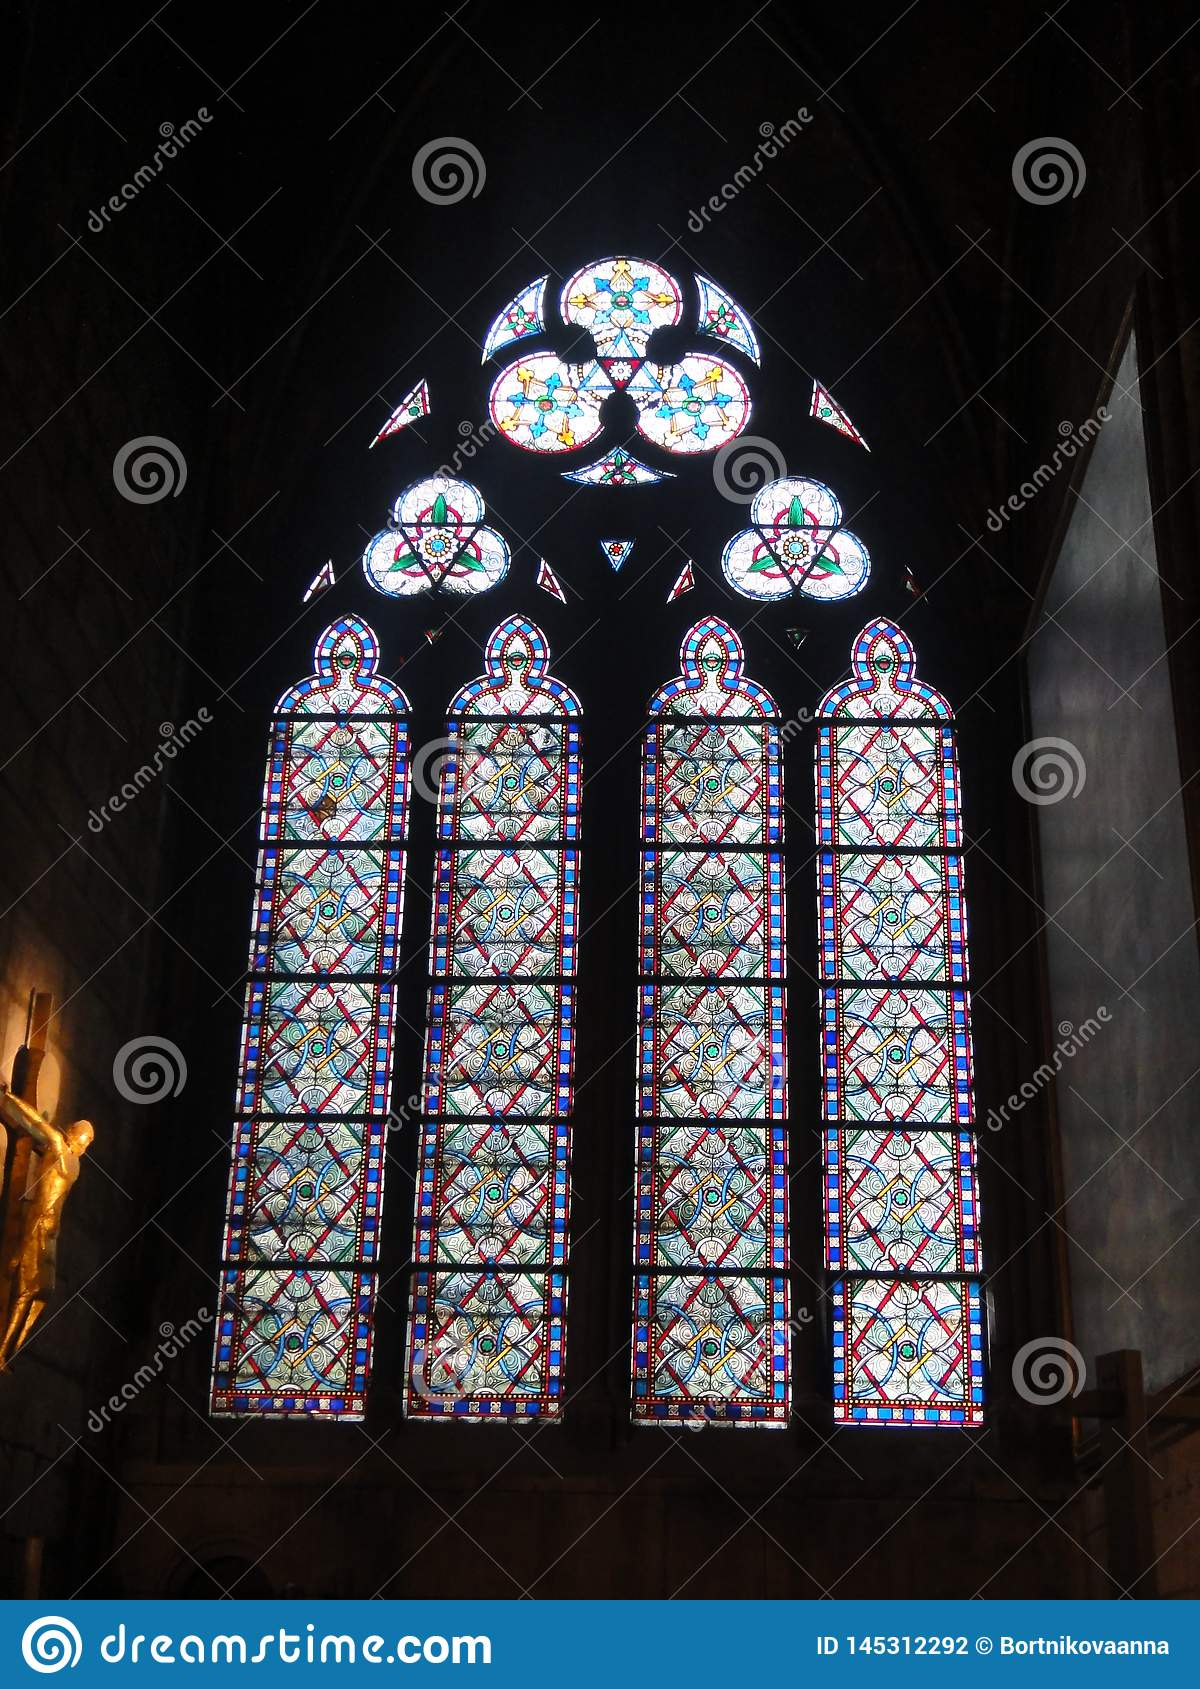 Reims, France - august 2011 : stained glass window of the Notre Dame cathedral where the kings of France were crowned